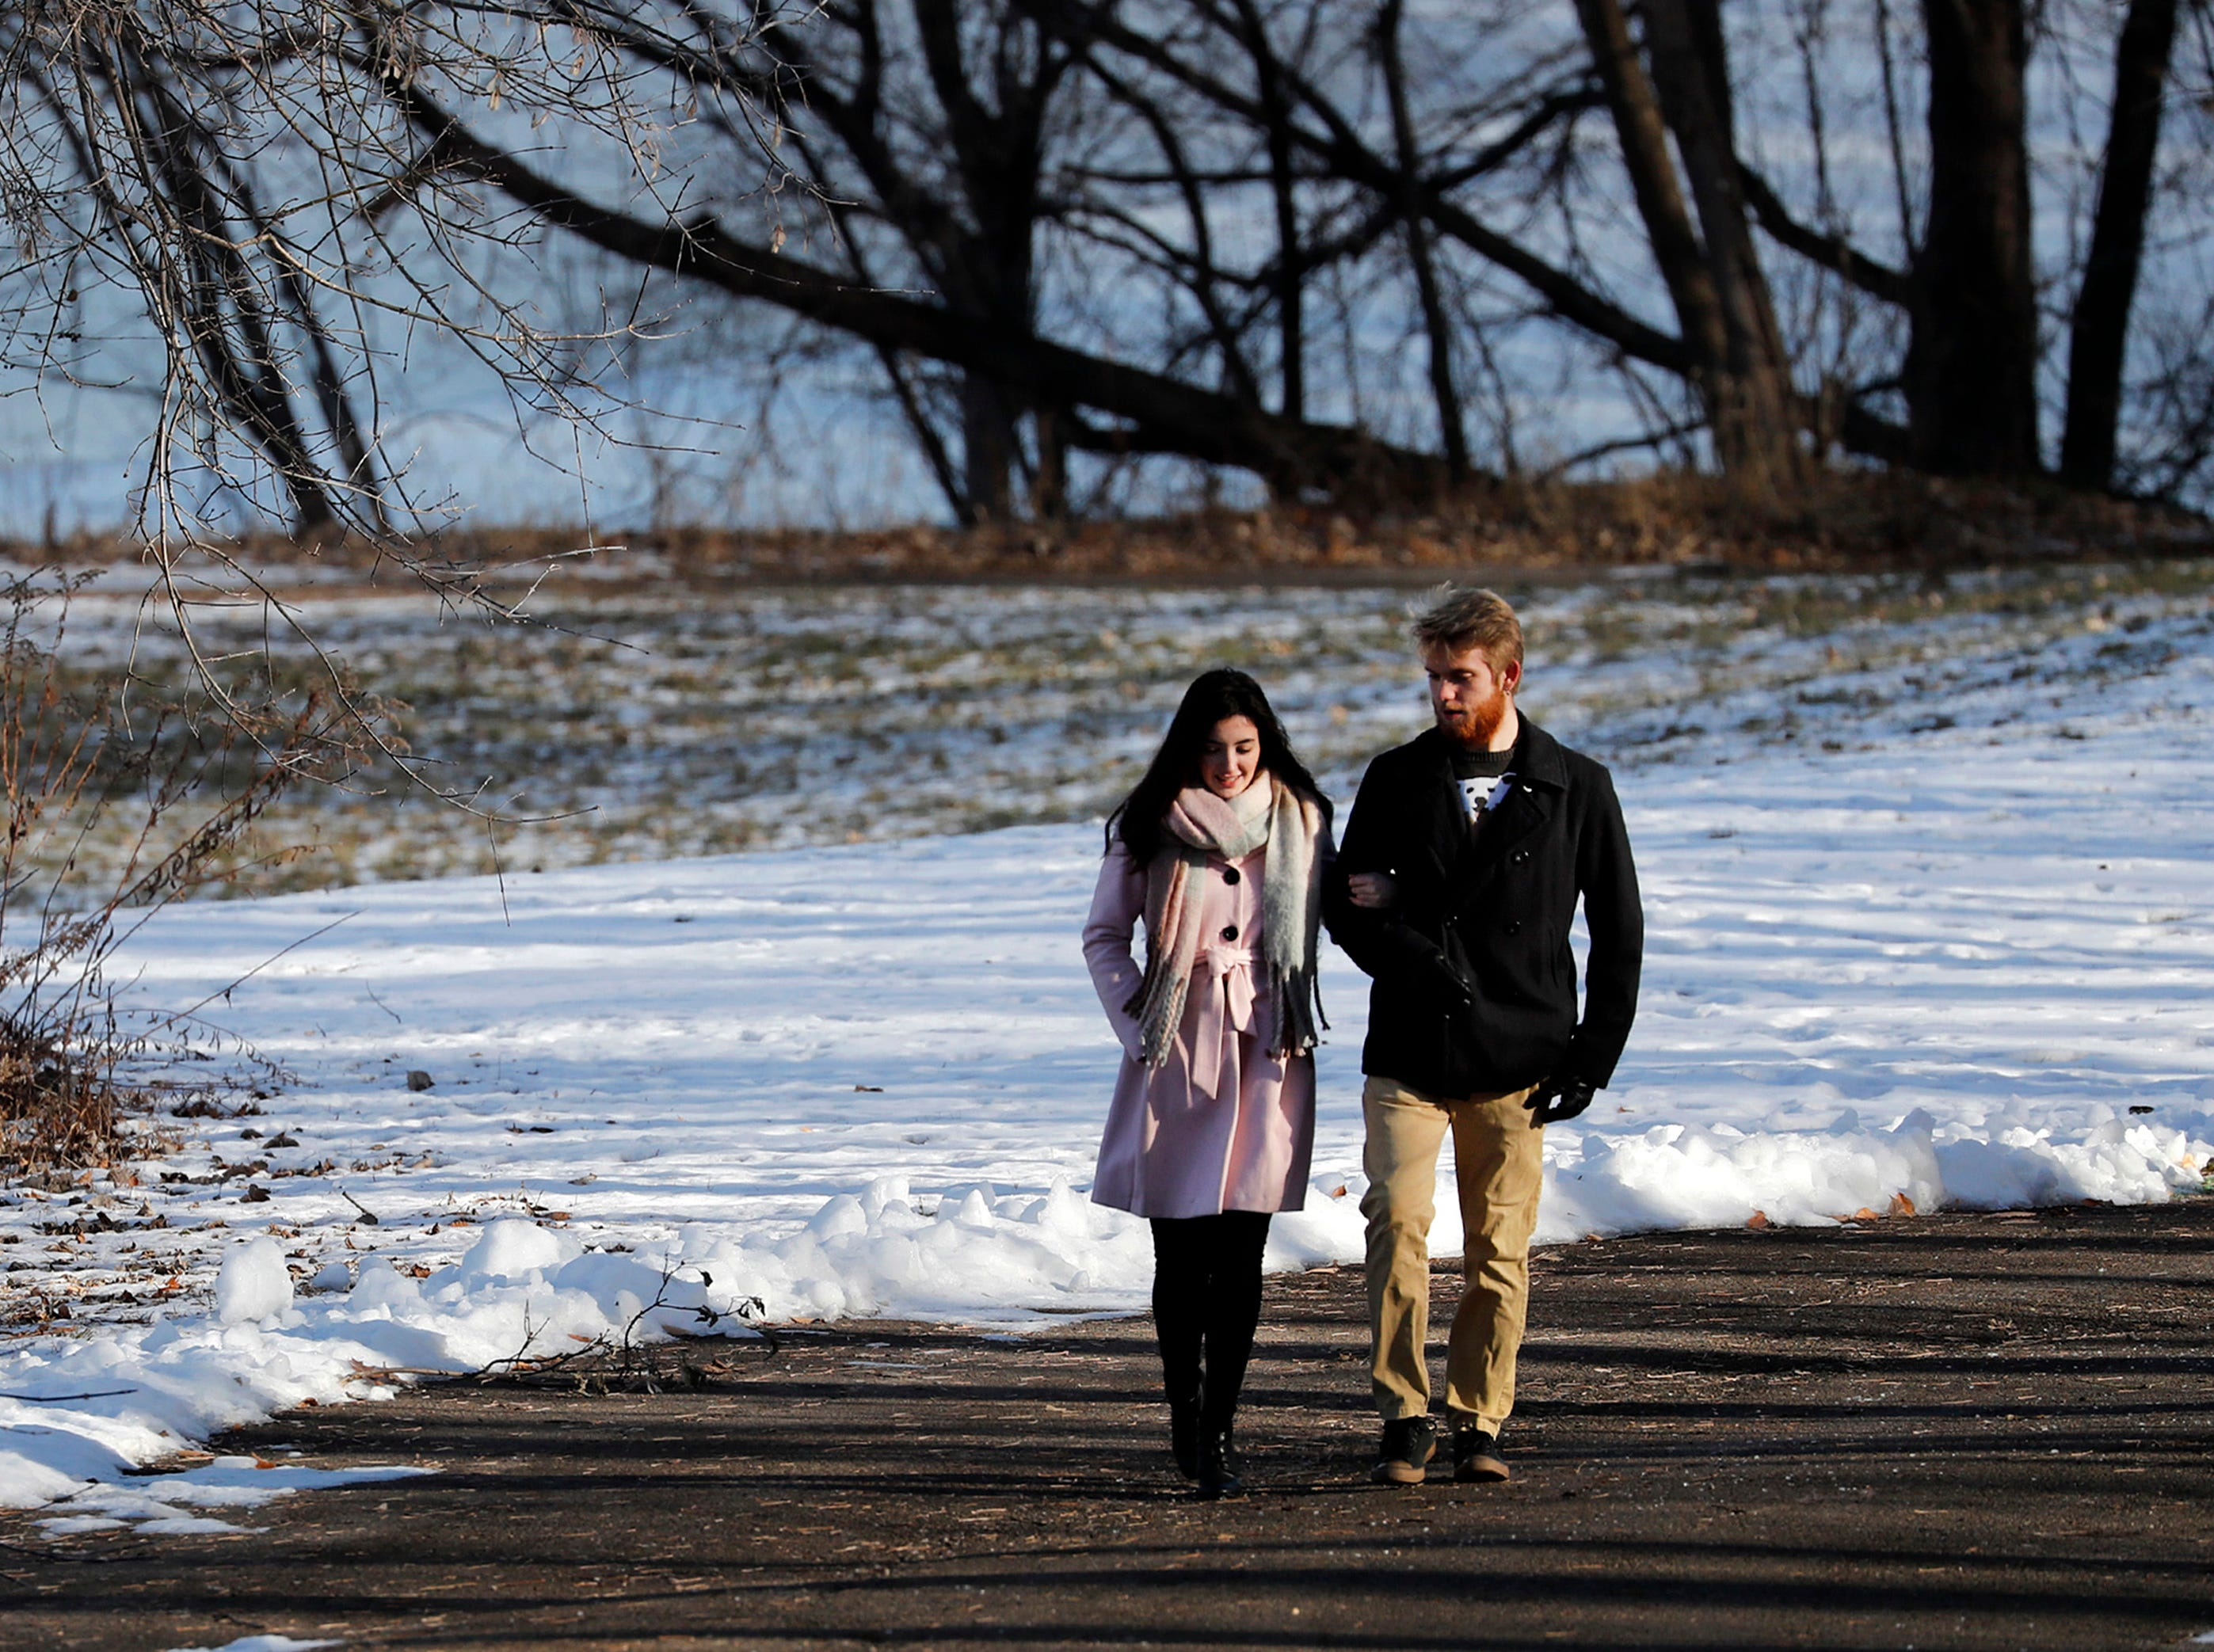 Rebecca Koopman, of Appleton, walks along a trail in Telulah Park with her boyfriend Ethan Craig, of Erie, Pa., Tuesday, Dec. 18, 2018, Appleton, Wis.Danny Damiani/USA TODAY NETWORK-Wisconsin